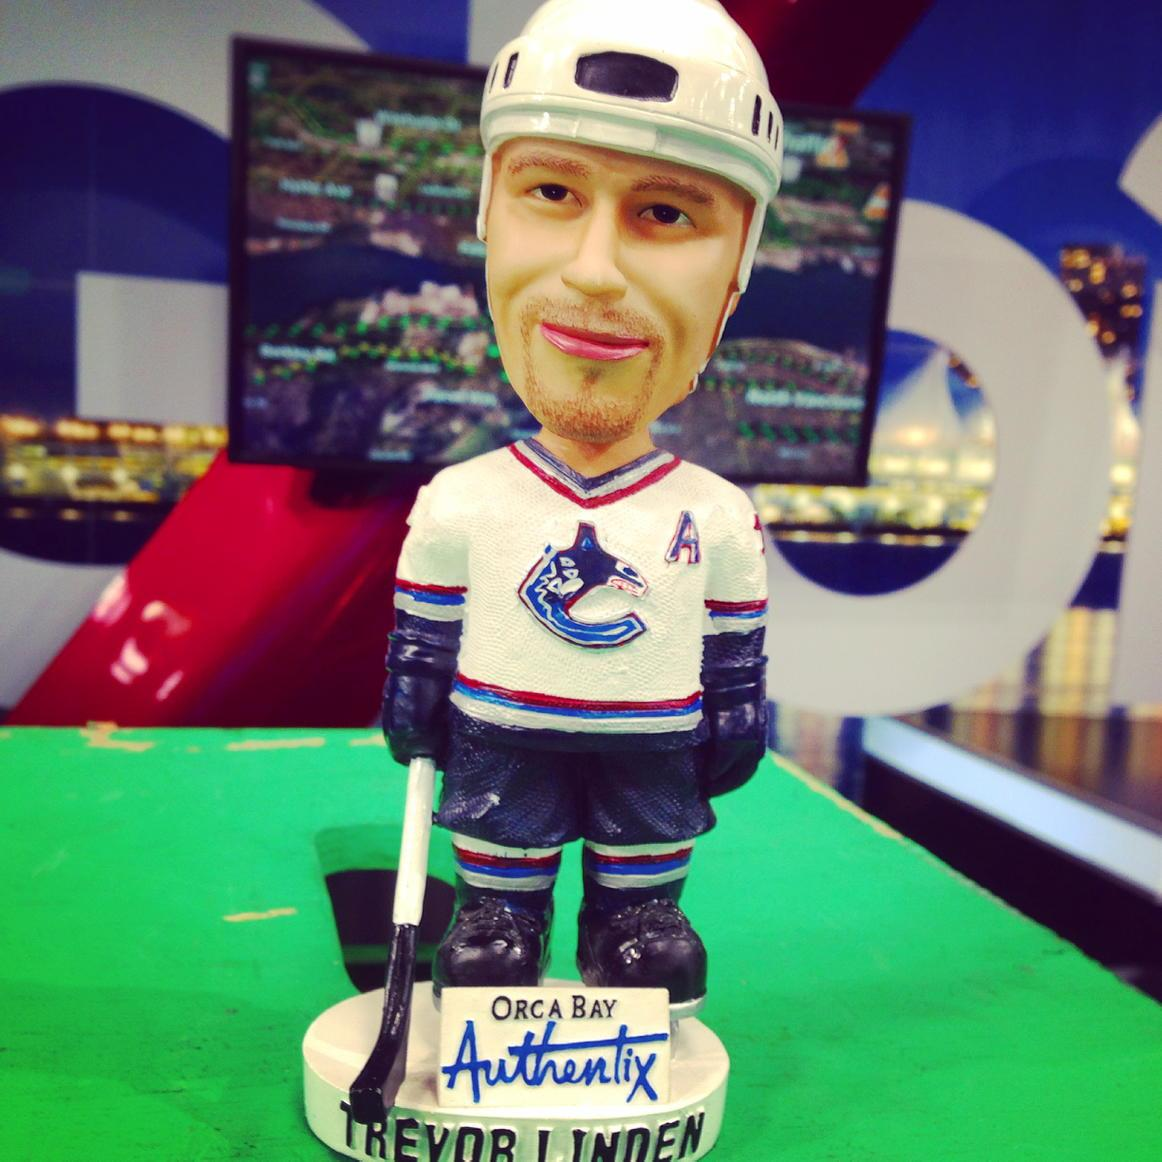 Channeling the @VanCanucks 1st round comeback of the '94 season with @trevor_linden bobble head  #gocanucksgo http://t.co/lDae9KntAw